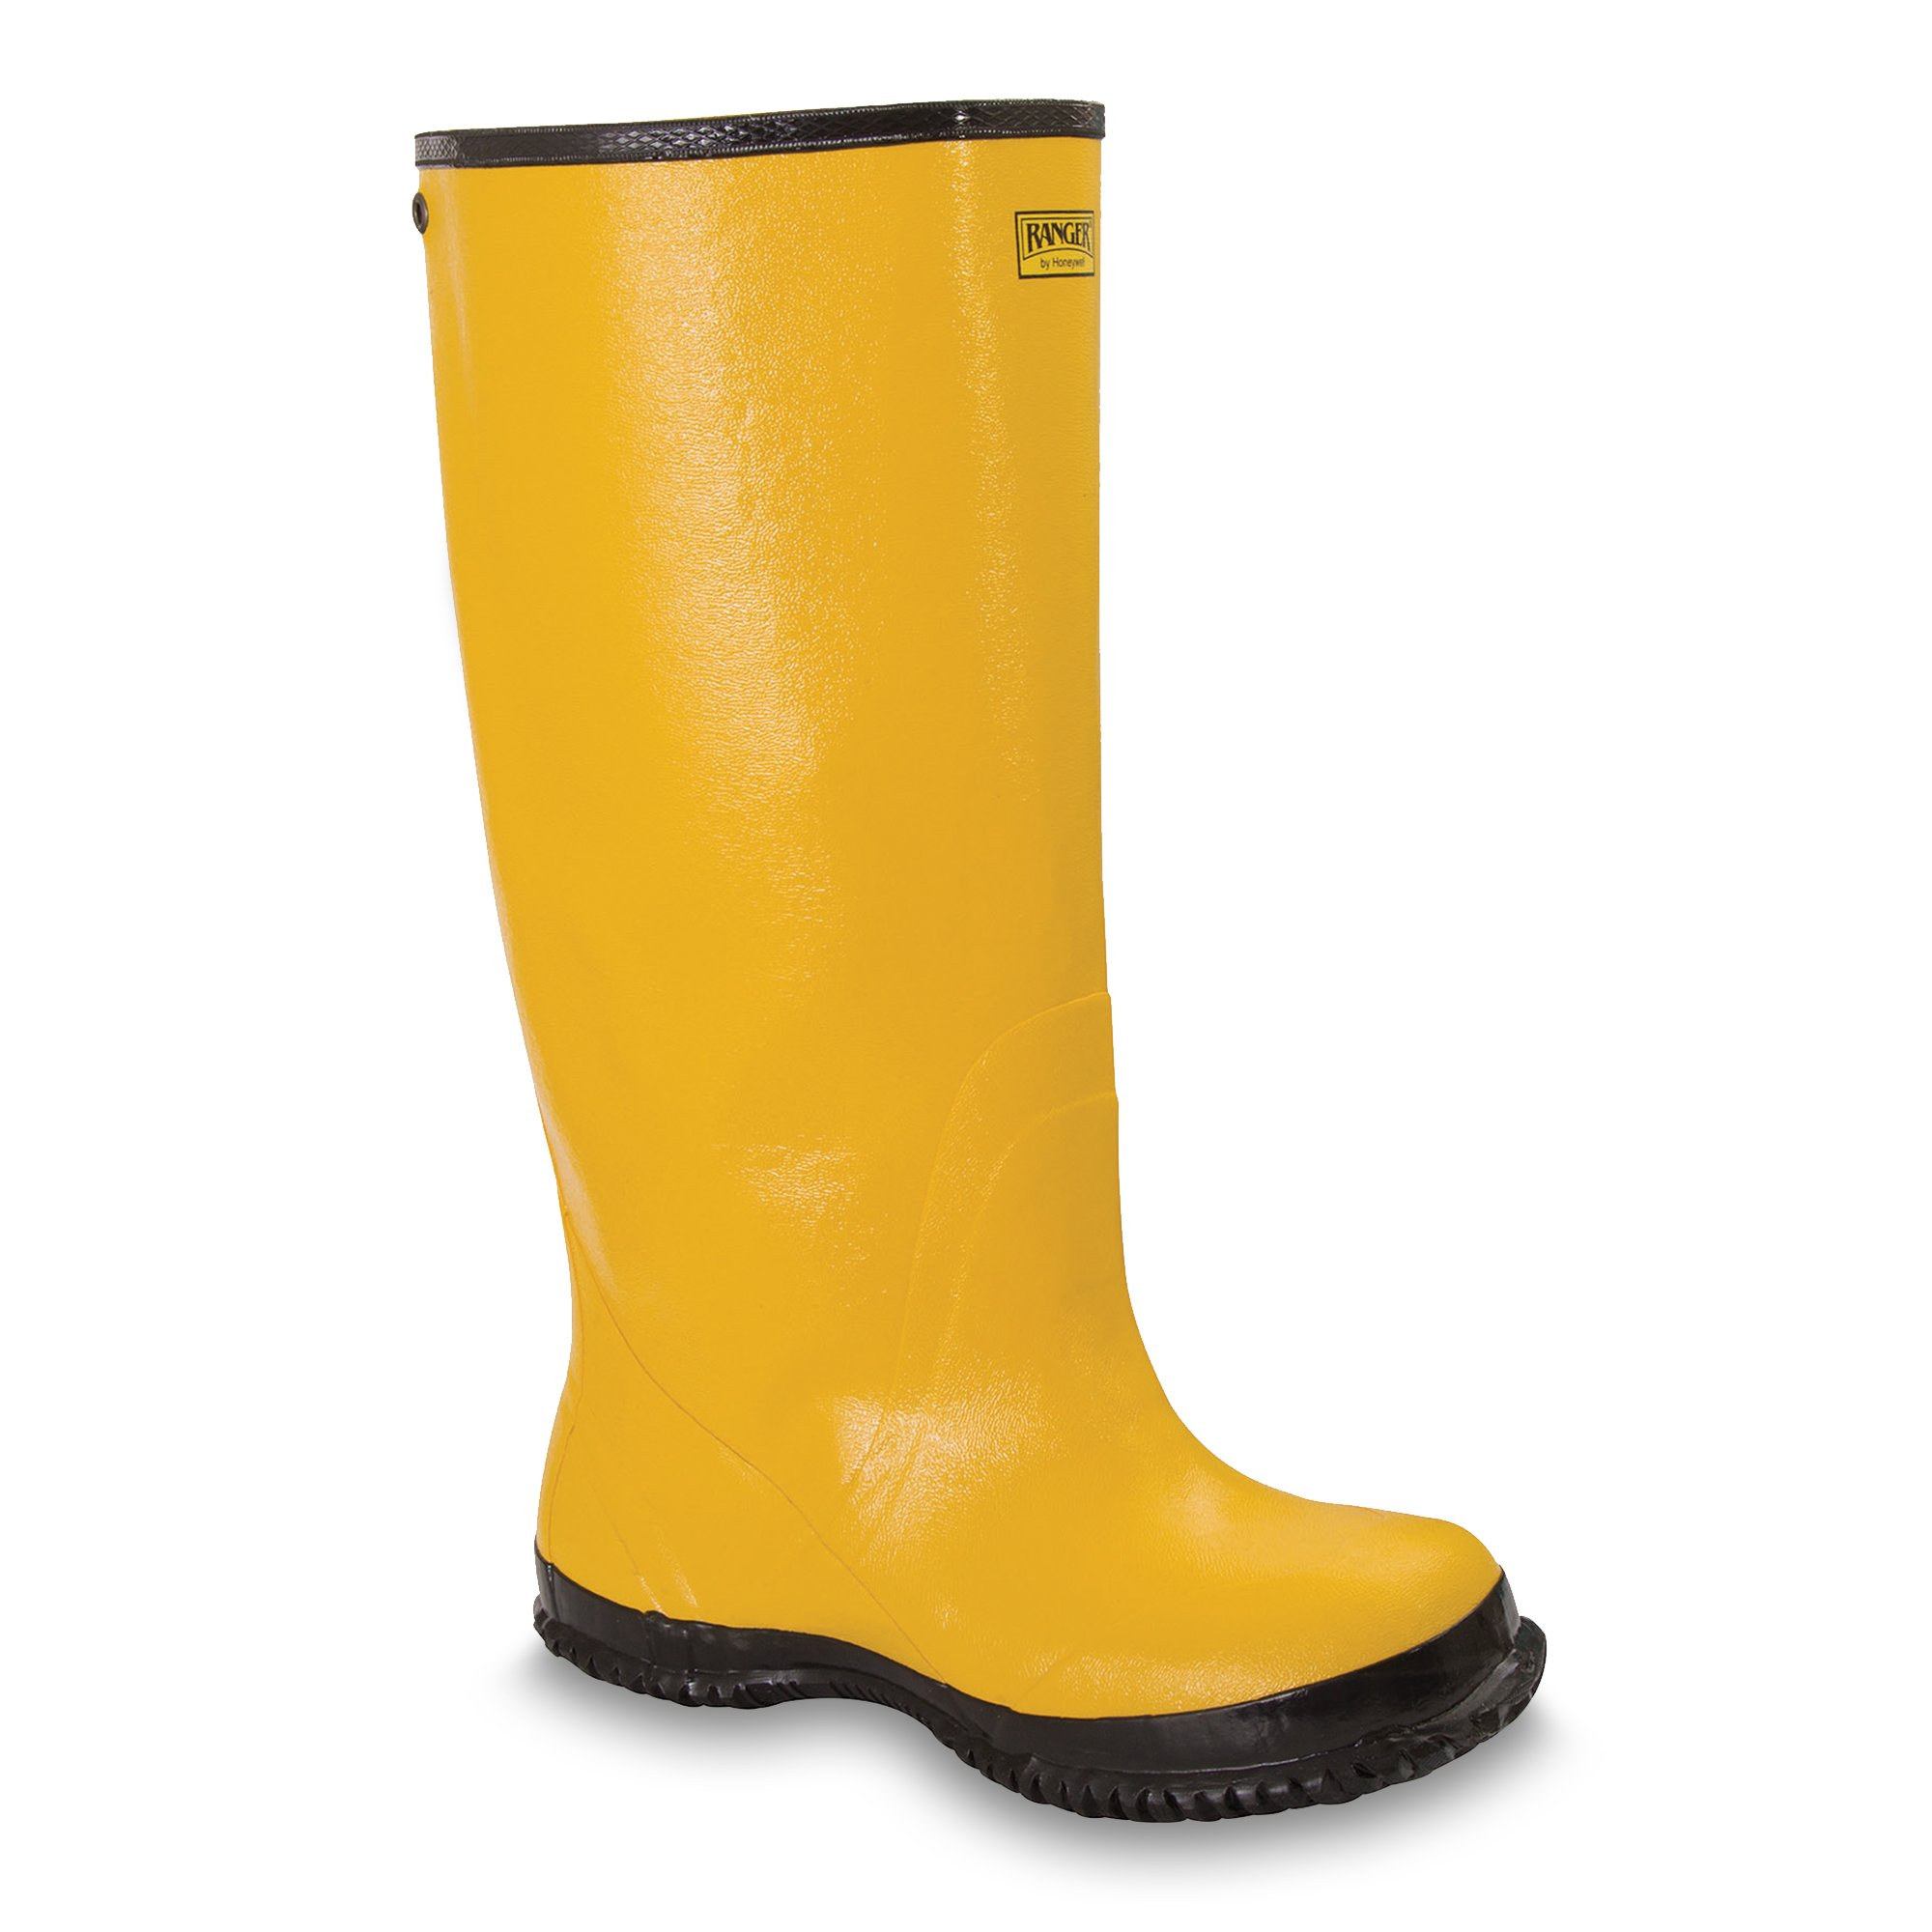 Ranger 18'' Oversized Men's Rubber Overboots, Yellow (A380) by Honeywell